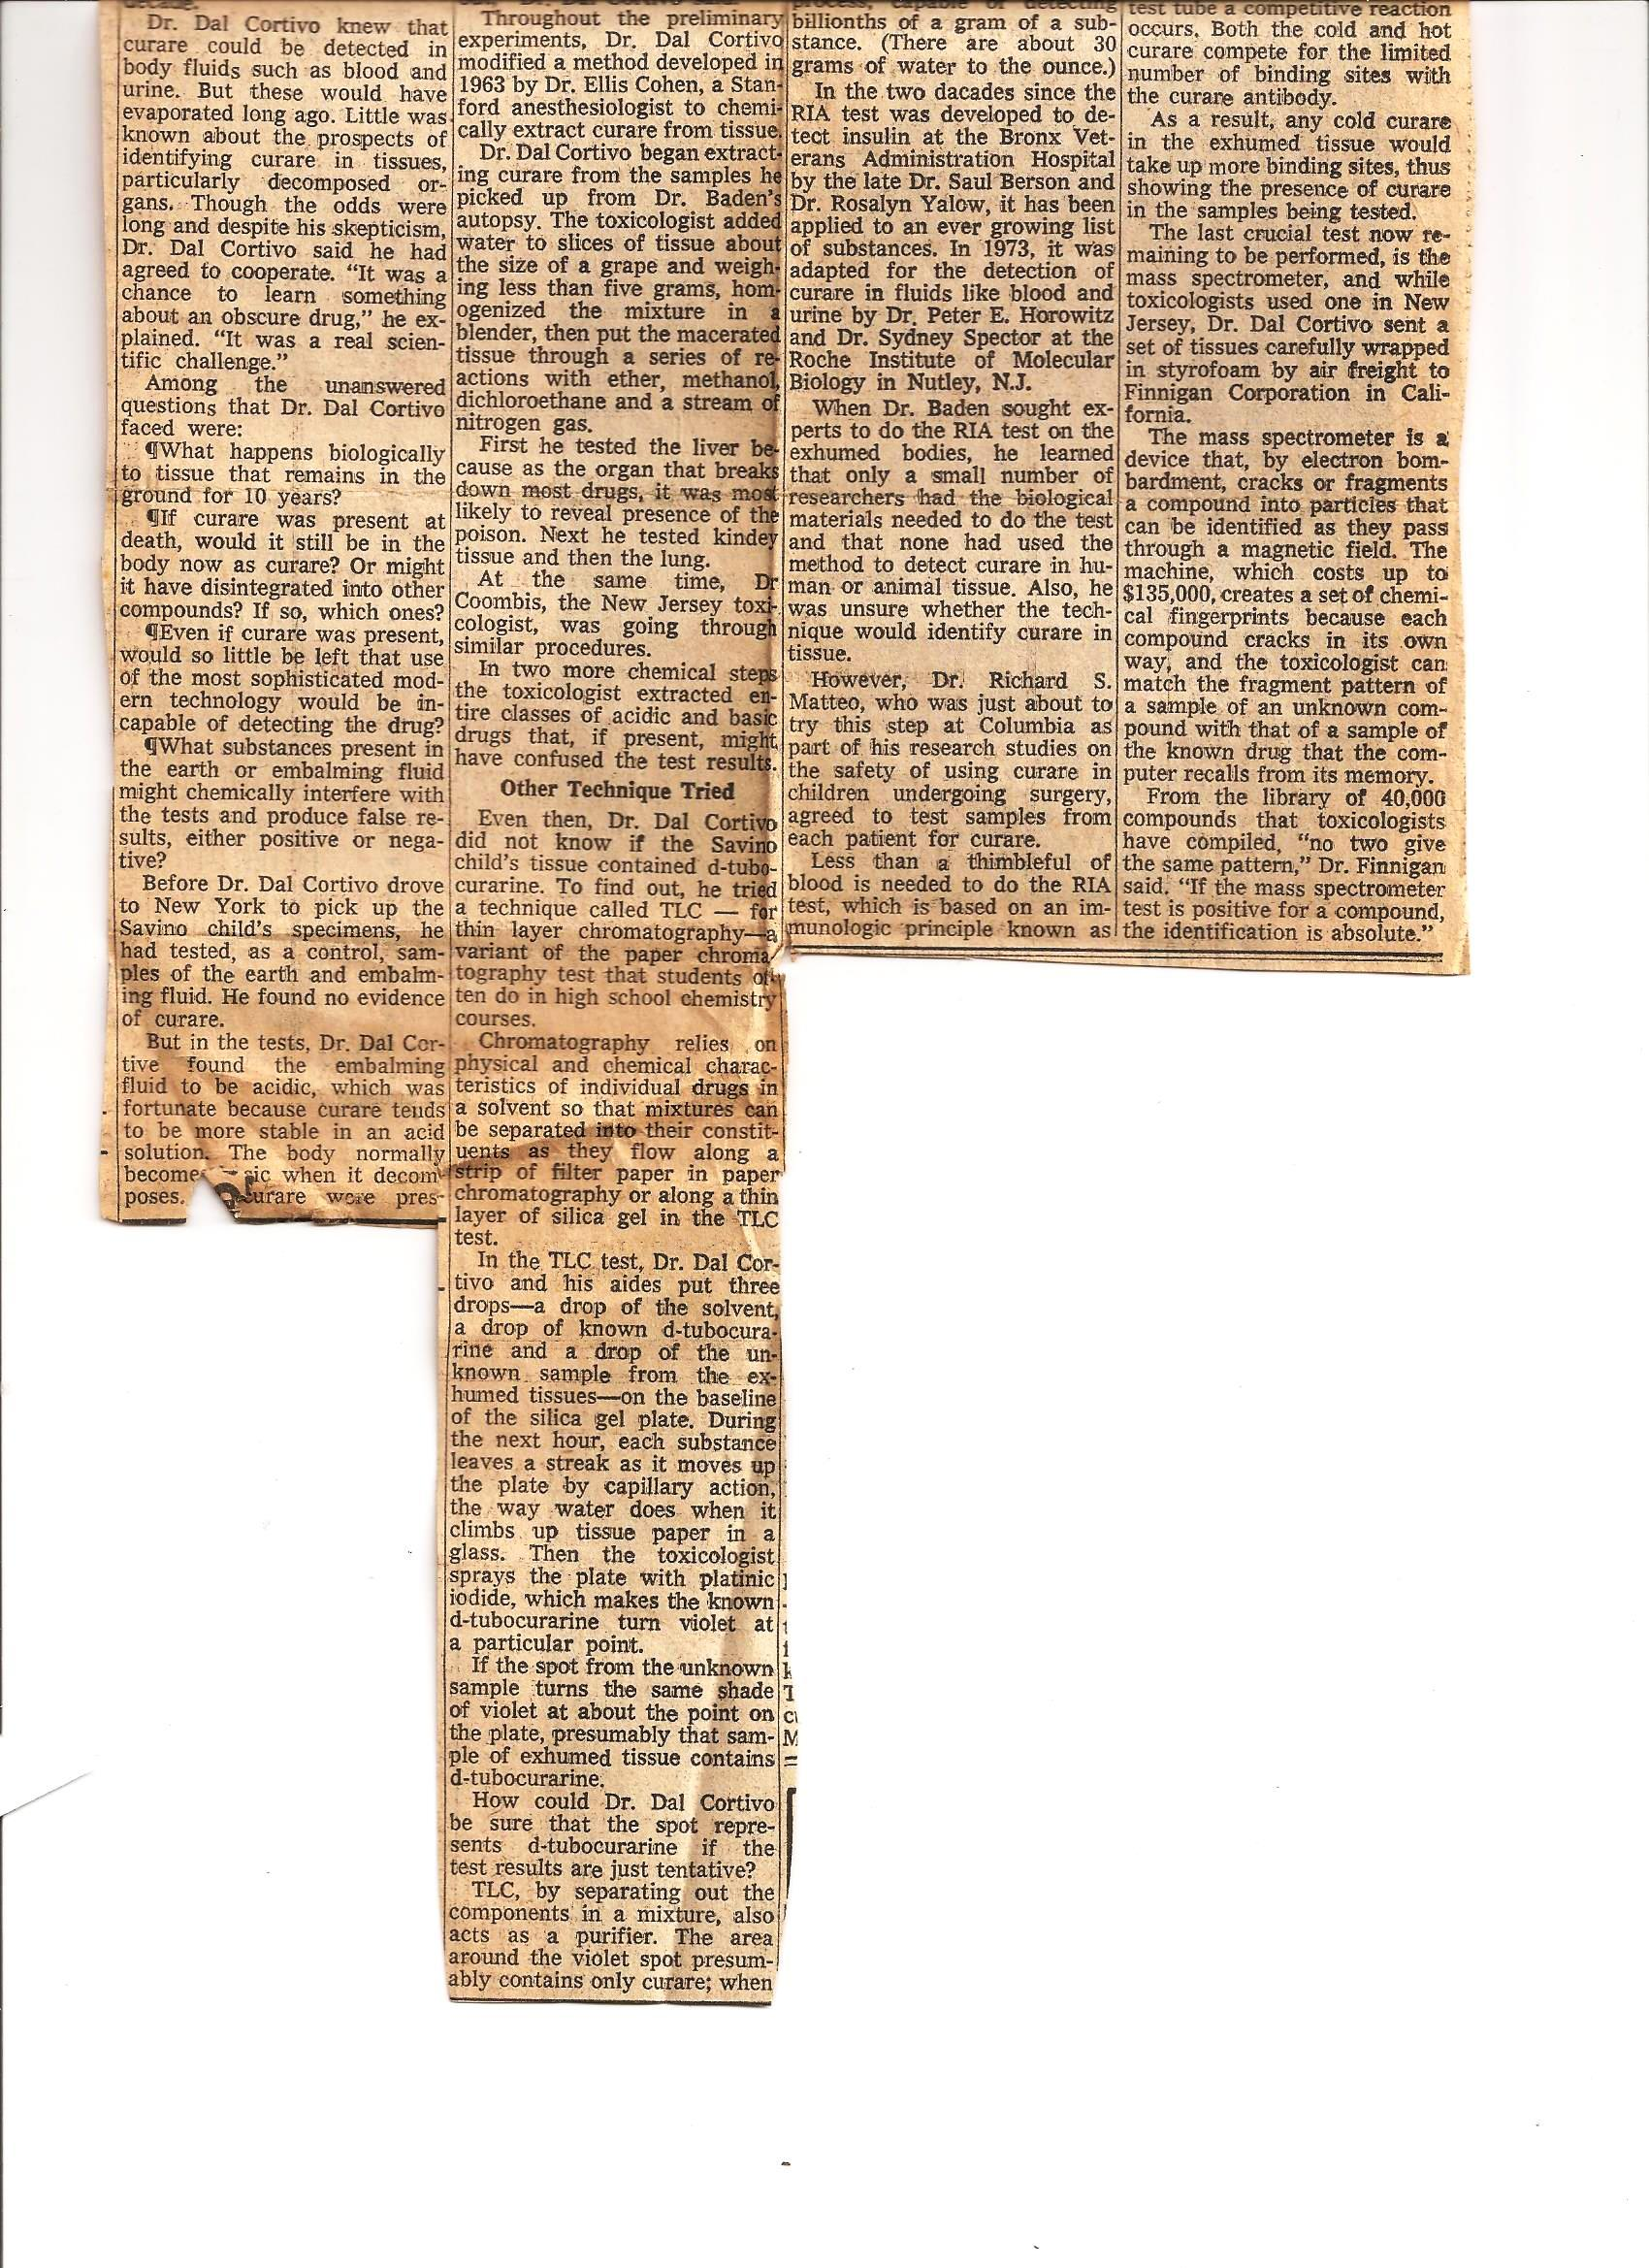 Doctor X-Curare Case-NY Times Part 3 (March 8, 1976).jpg